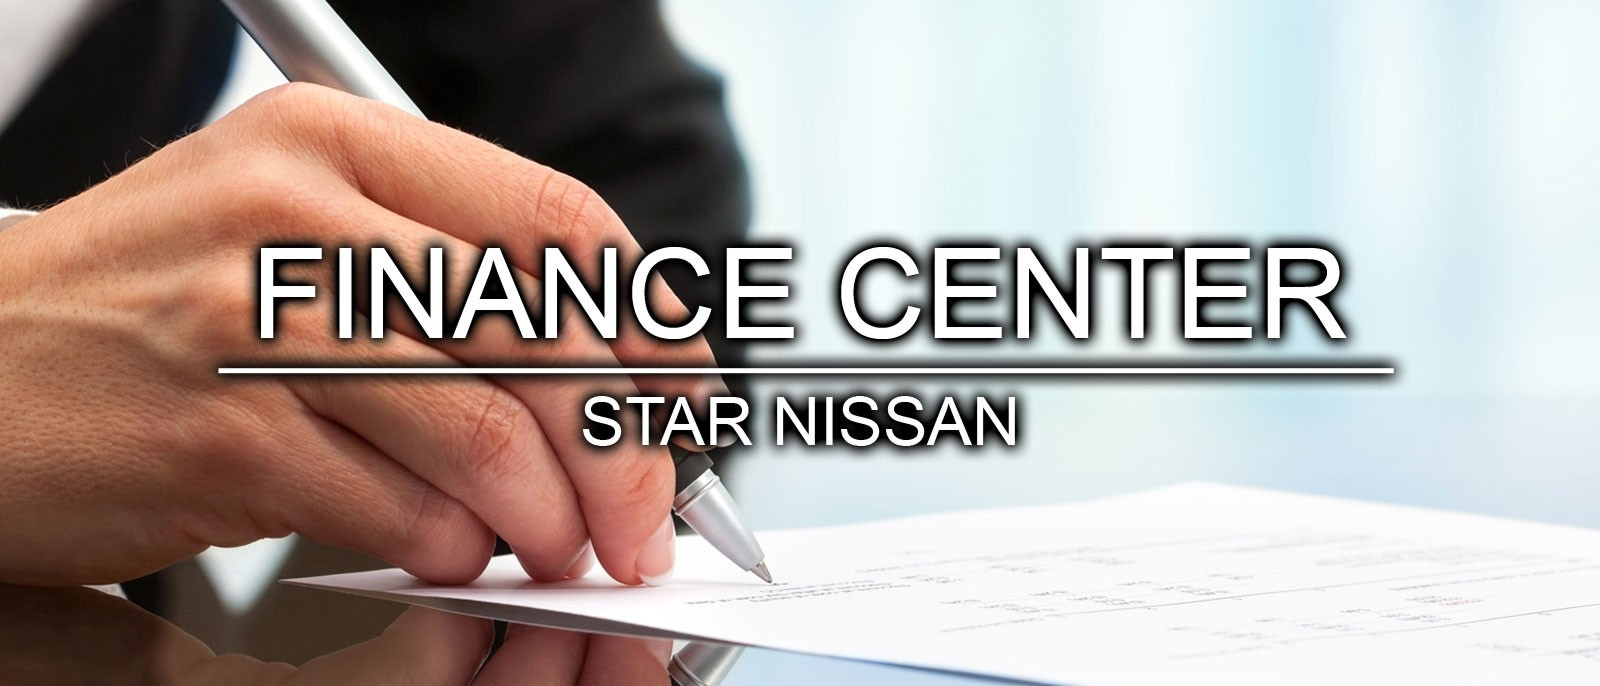 Star Nissan Finance Center